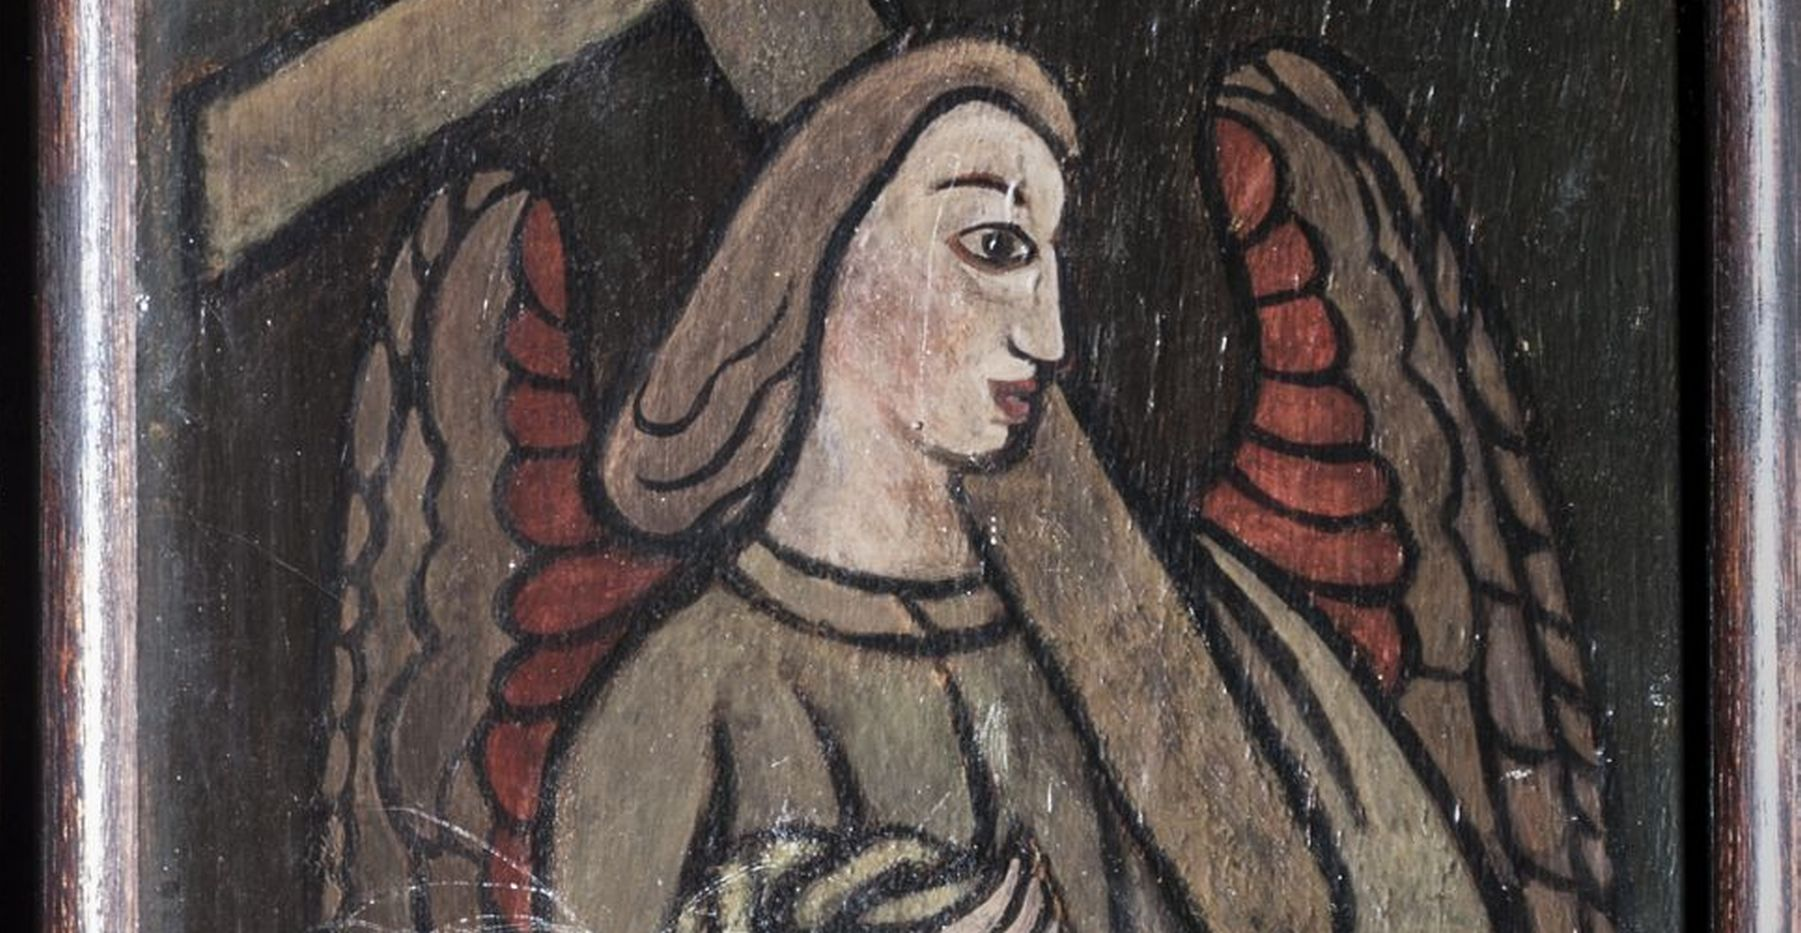 Angel painting detail